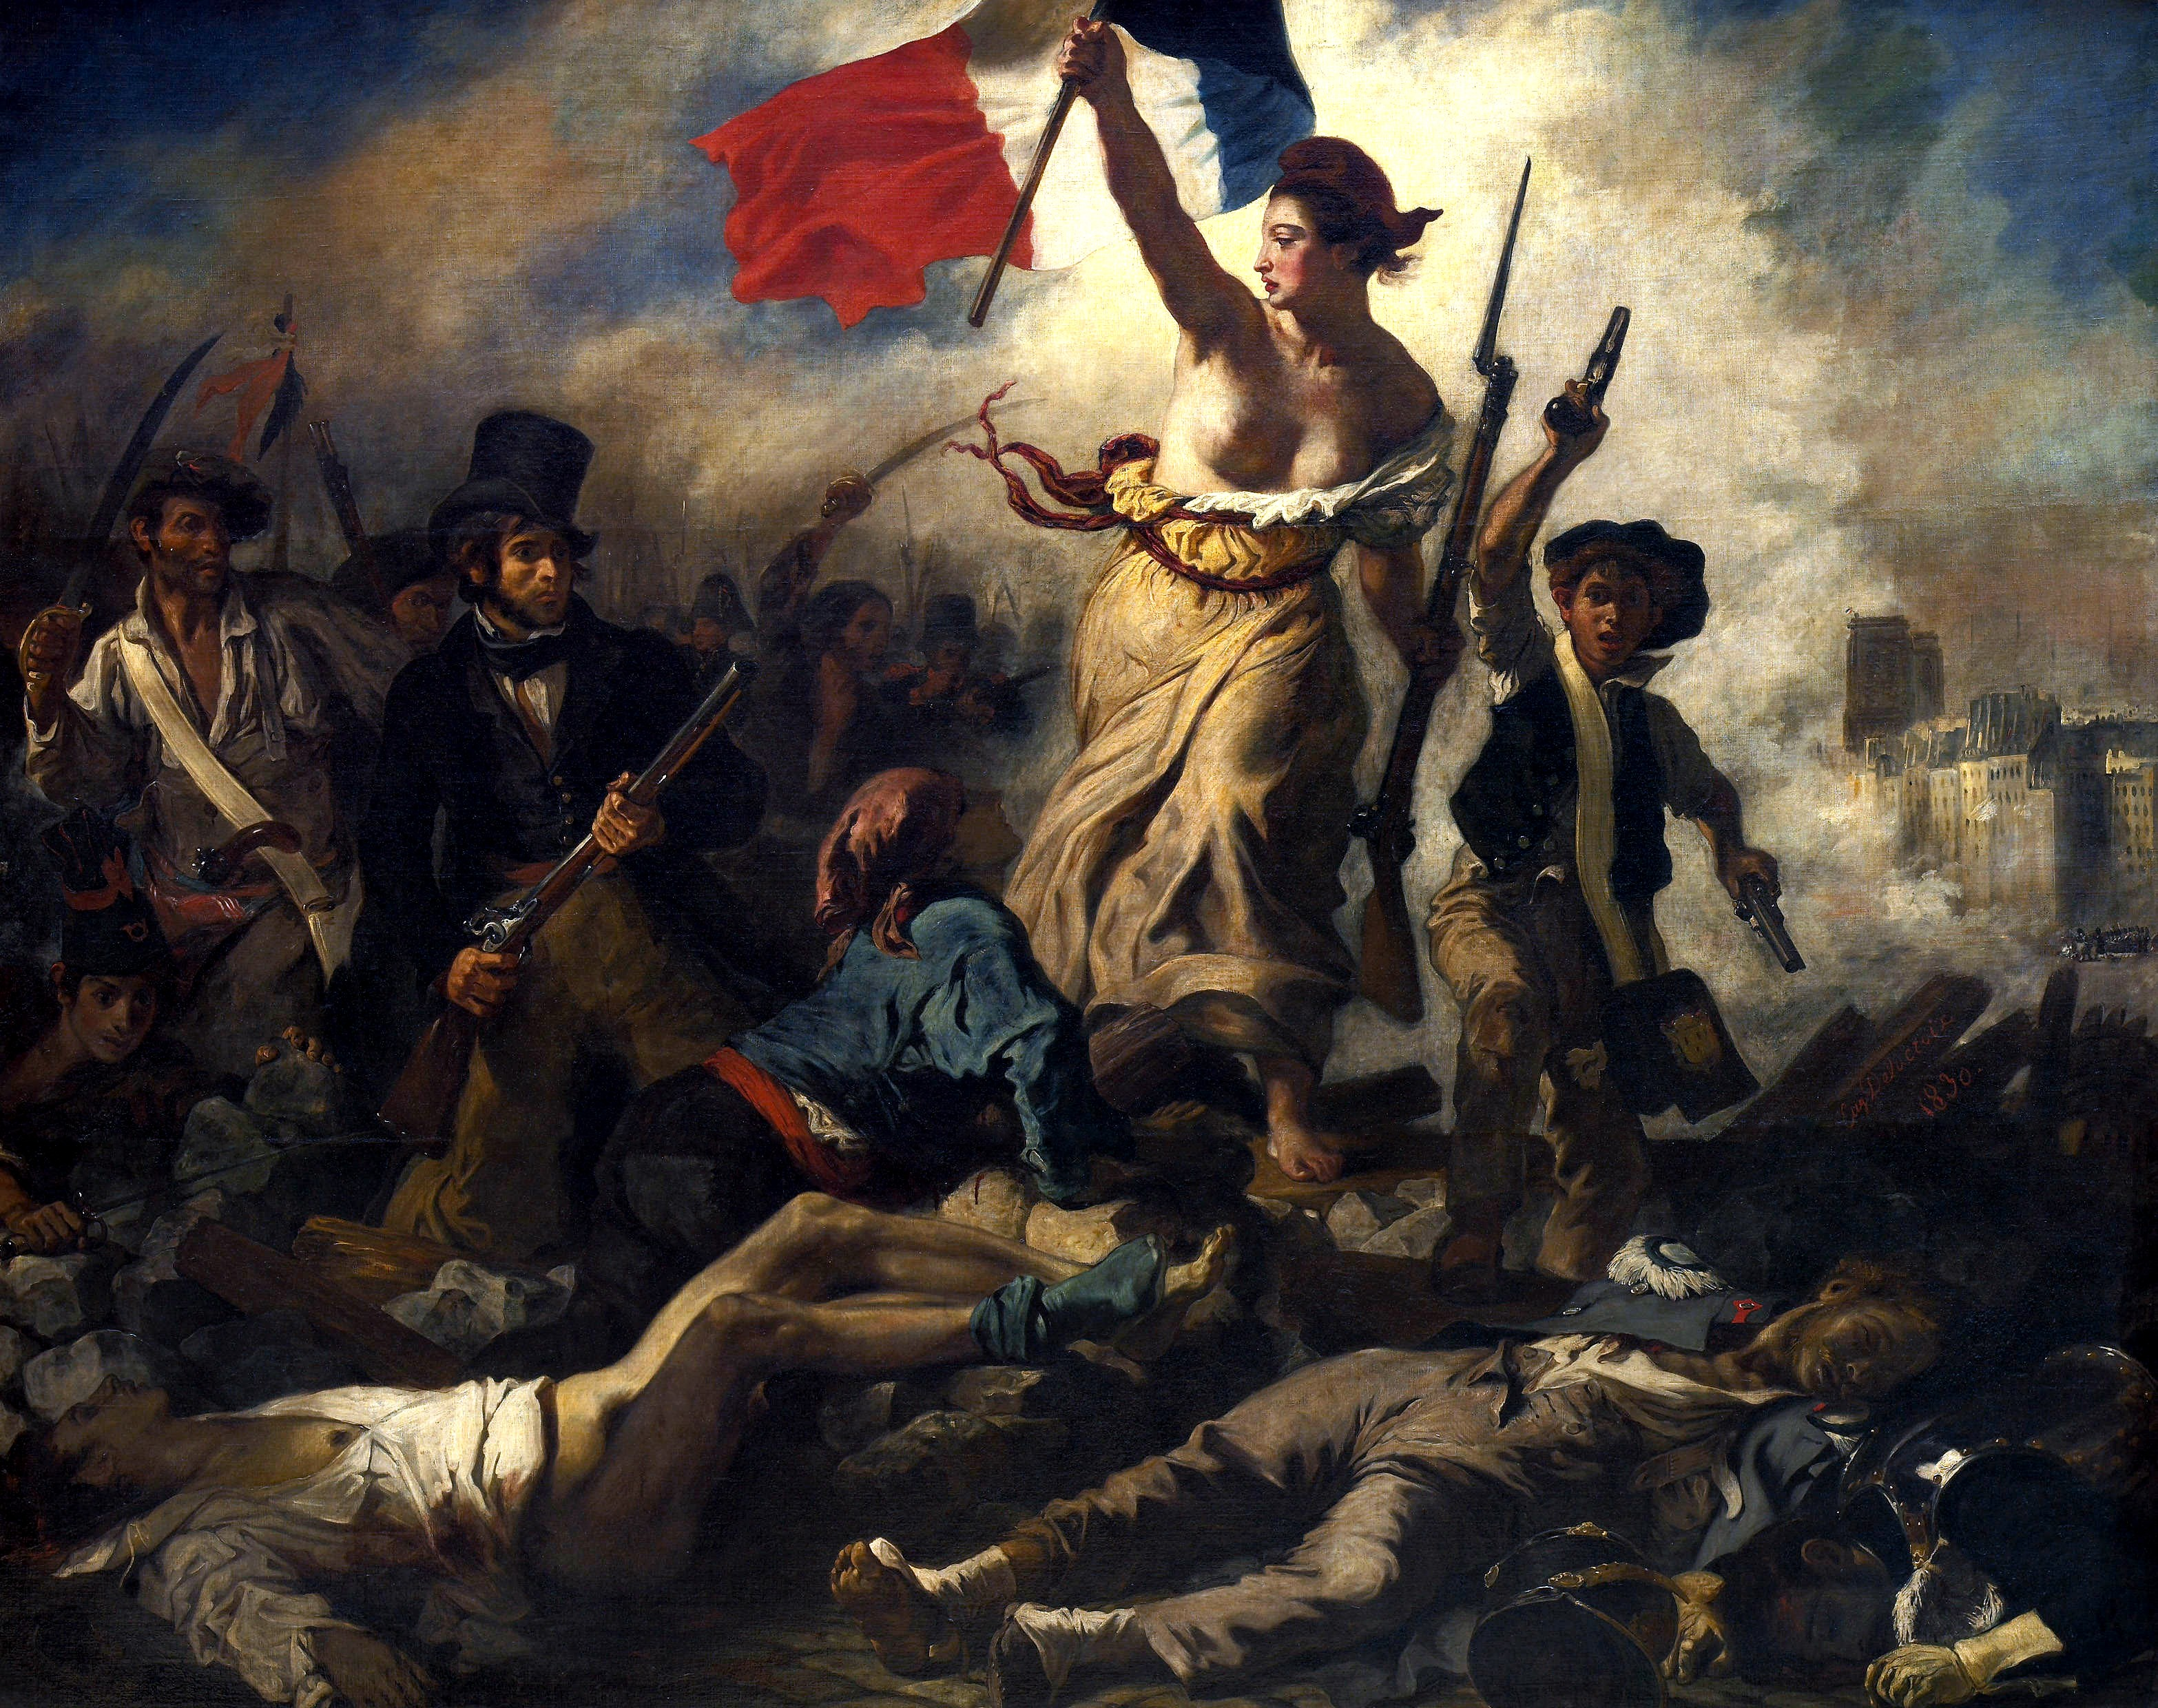 https://upload.wikimedia.org/wikipedia/commons/a/a7/Eug%C3%A8ne_Delacroix_-_La_libert%C3%A9_guidant_le_peuple.jpg